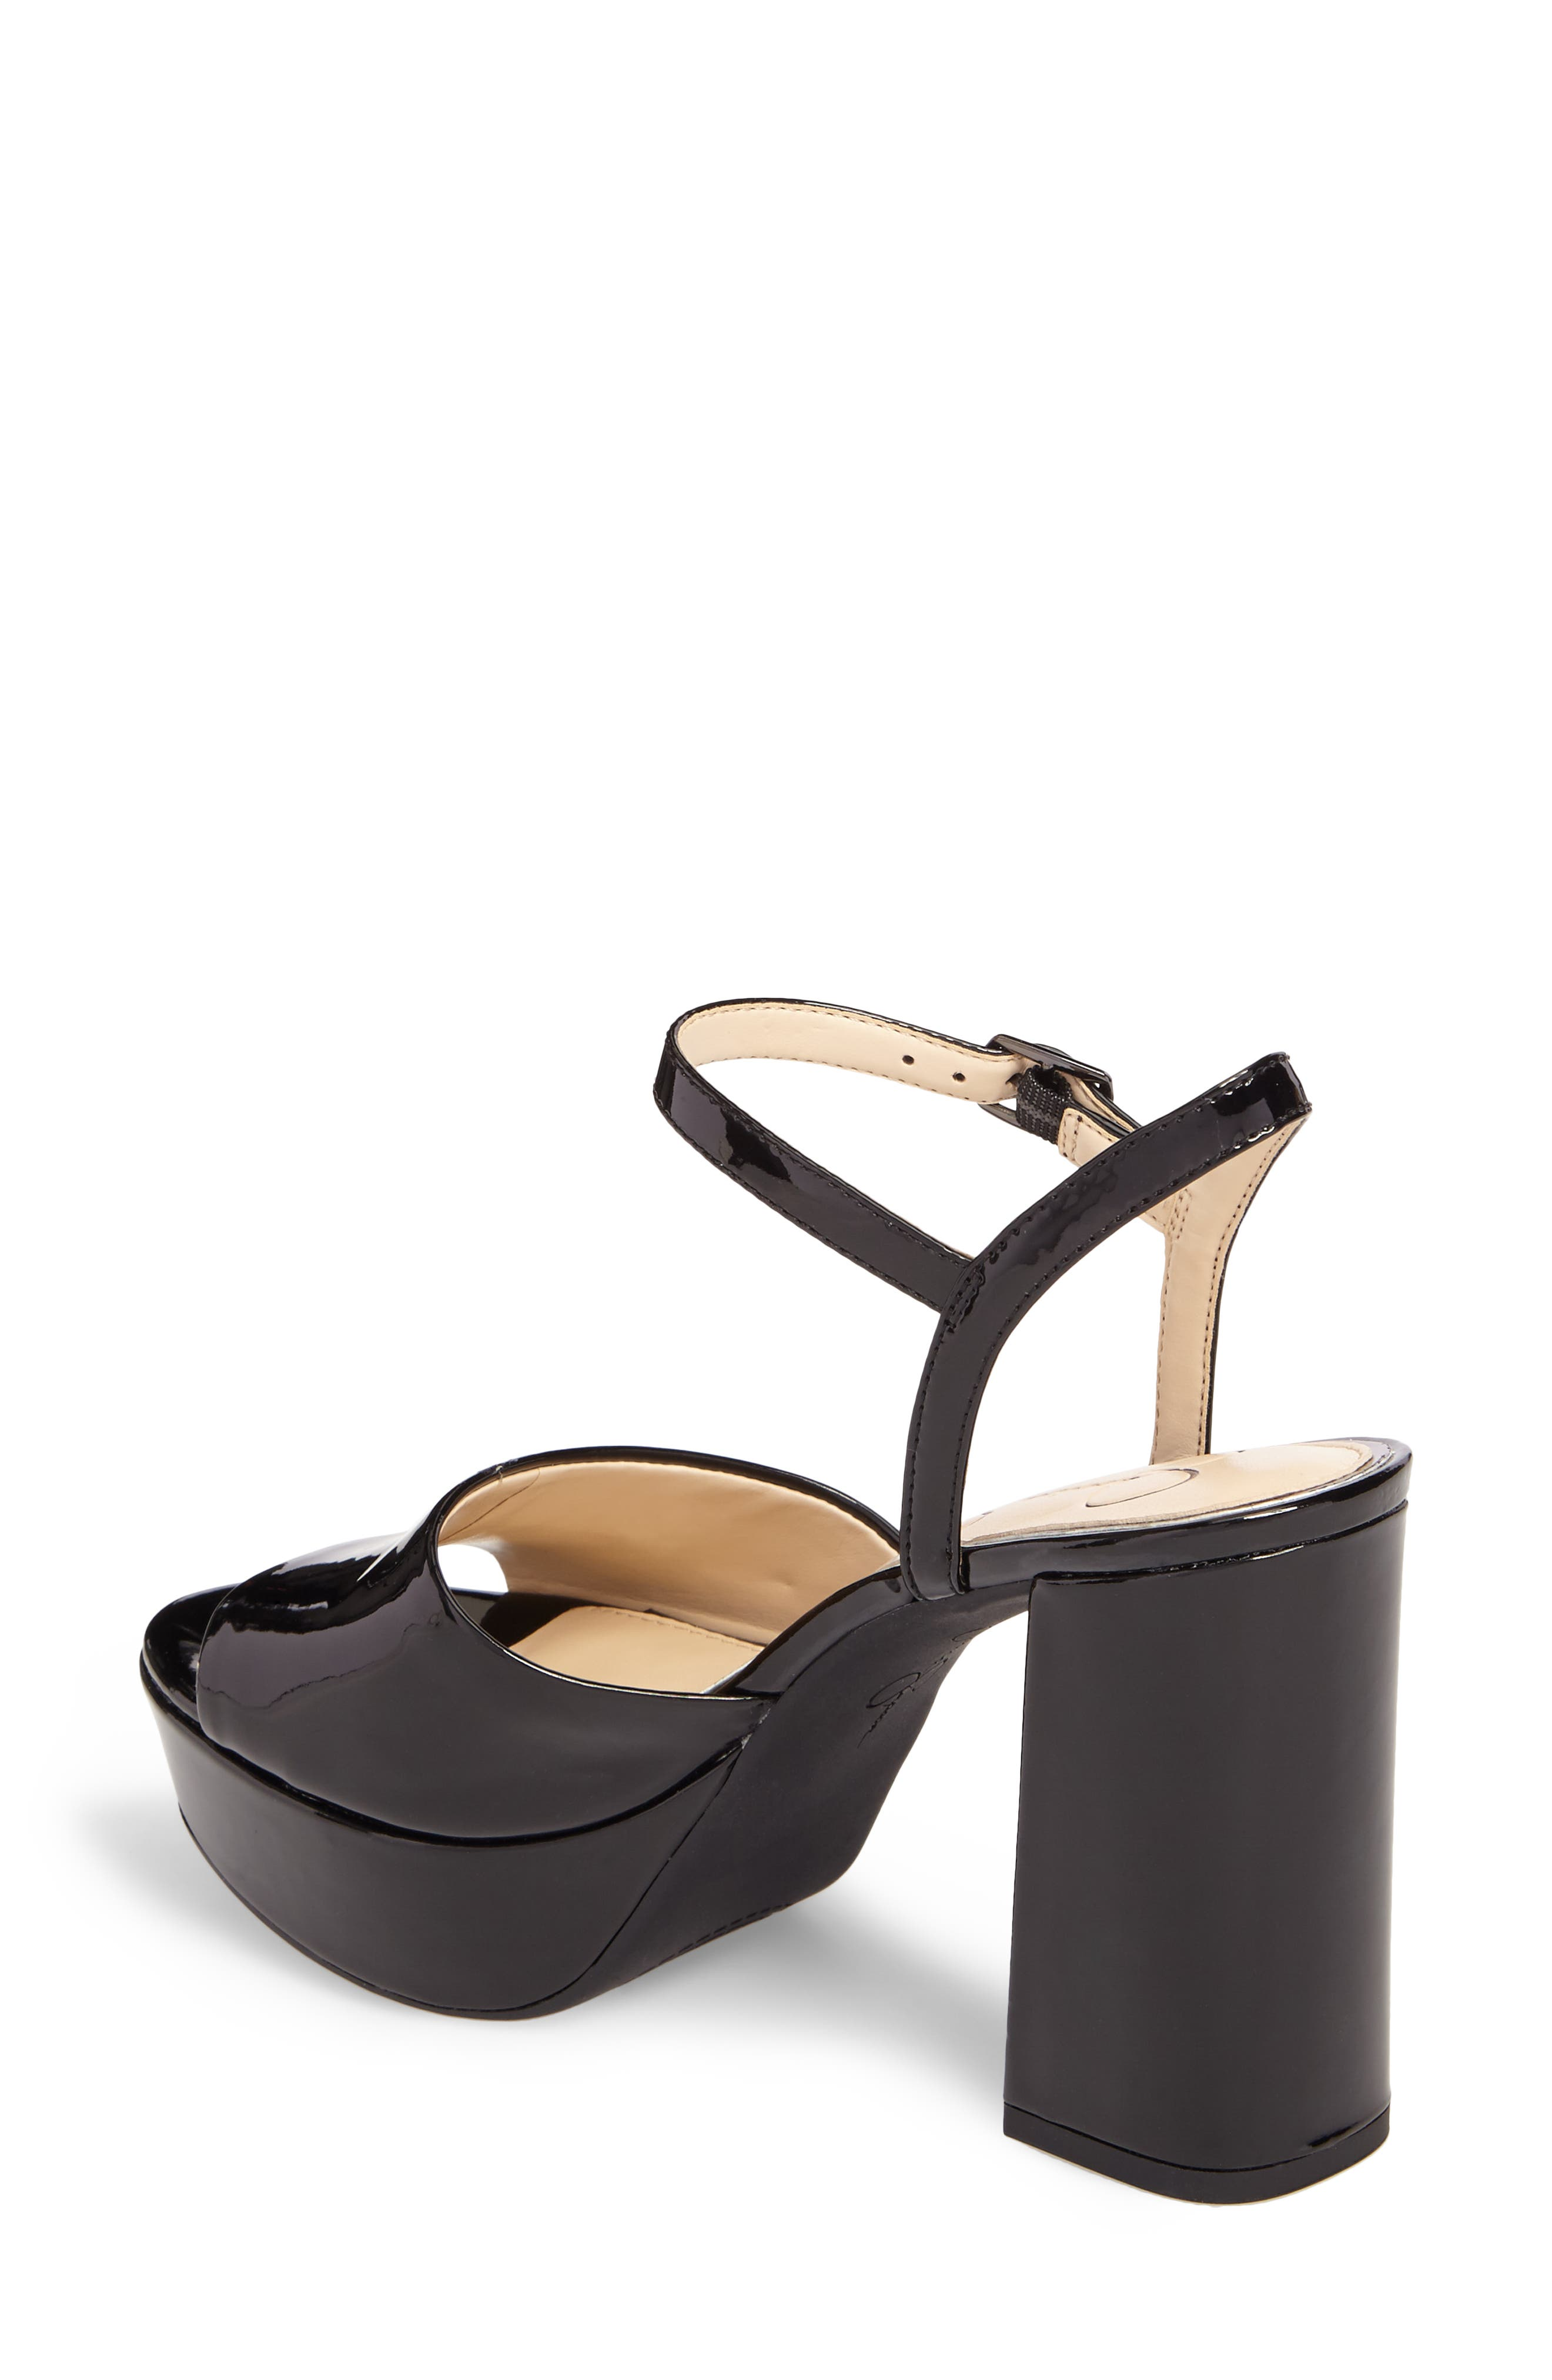 Kerrick Platform Sandal,                             Alternate thumbnail 2, color,                             001